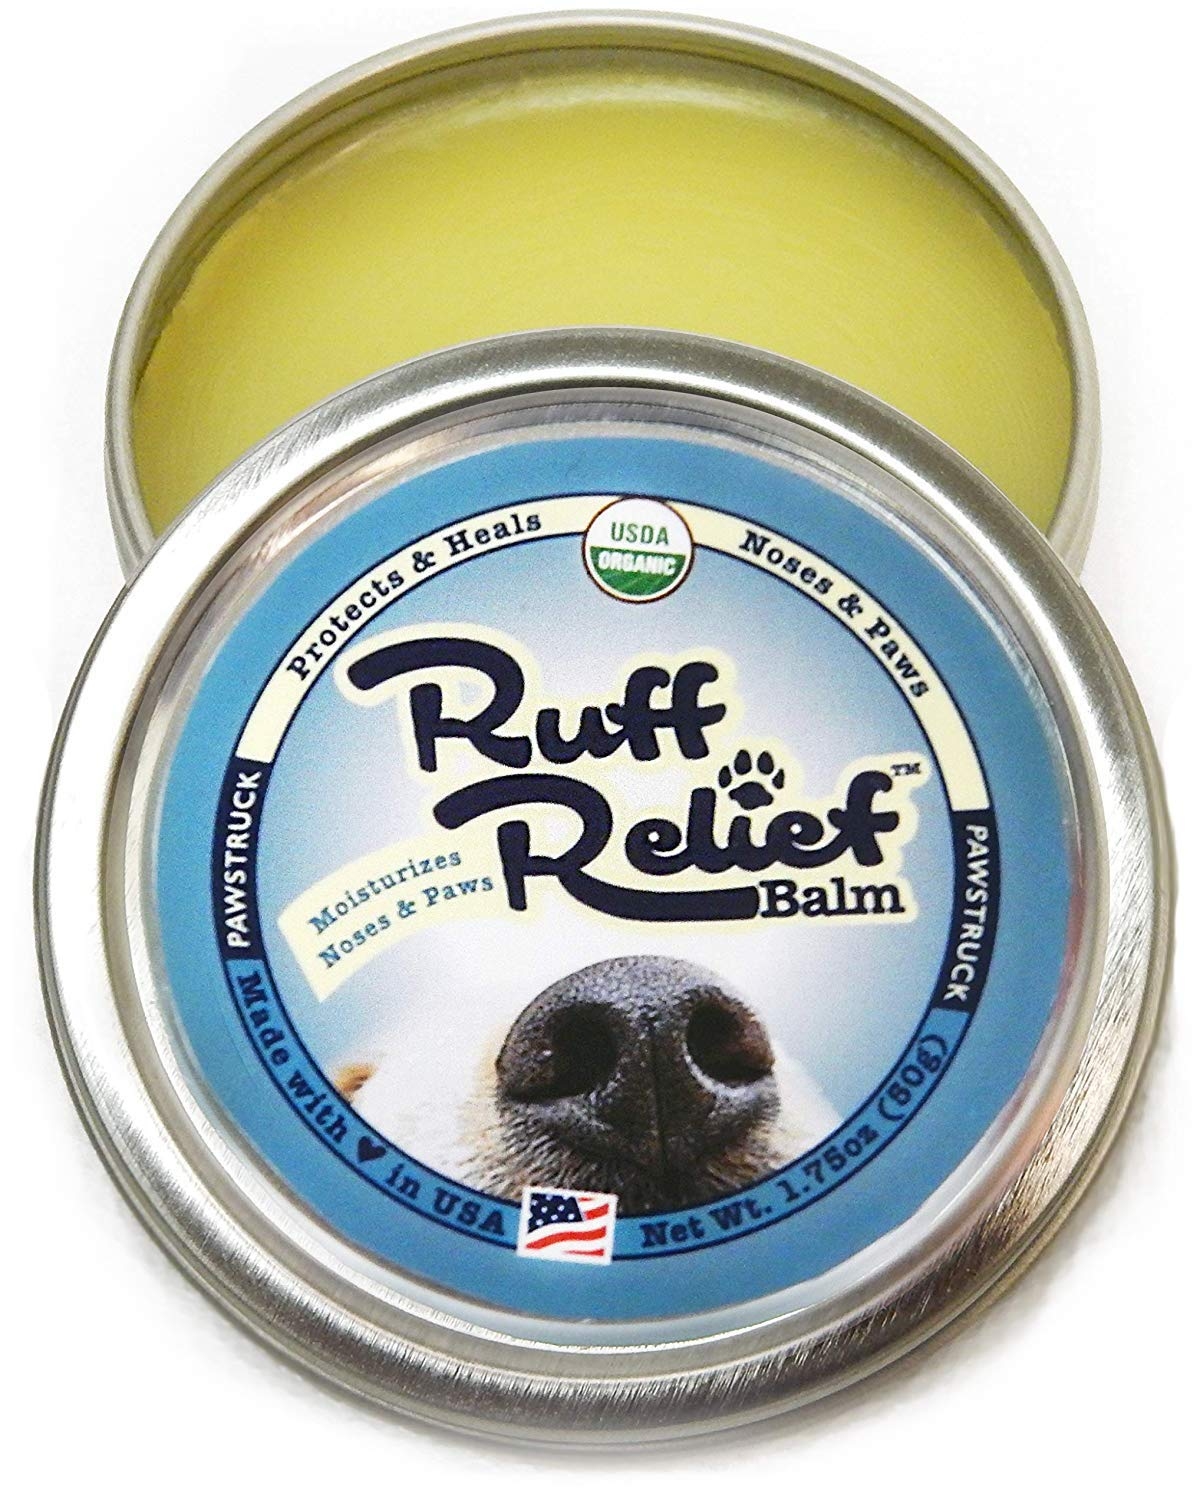 Organic Nose & Paw Wax Balm for Dogs   100% Natural, Made in USA, USDA Certified Soother   Snout & Foot Pad Ointment Cream Moisturizer for Dry Cracked K9 or Puppy Skin   Ruff Relief Paw Protection